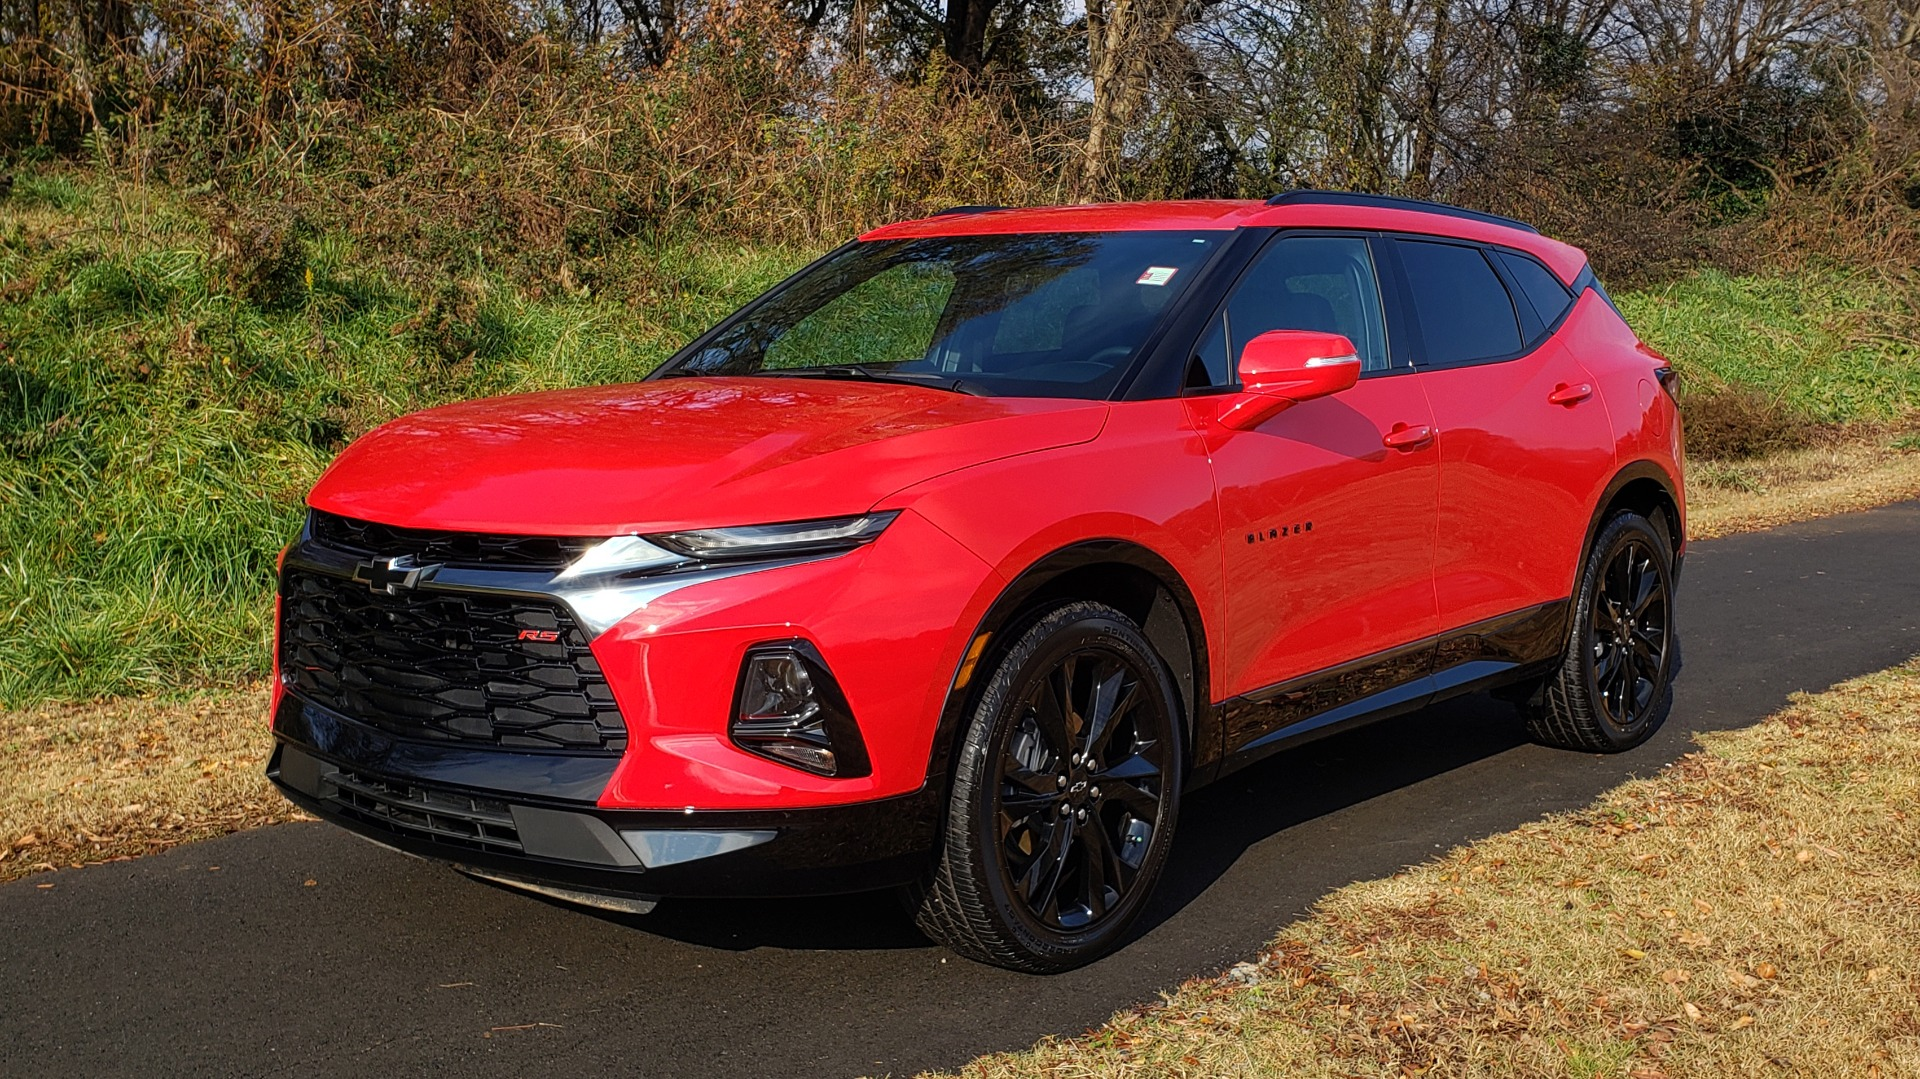 Used 2020 Chevrolet BLAZER RS / 3.6L V6 / 9-SPD AUTO / NAV / BOSE / HTD STS / REARVIEW for sale Sold at Formula Imports in Charlotte NC 28227 2